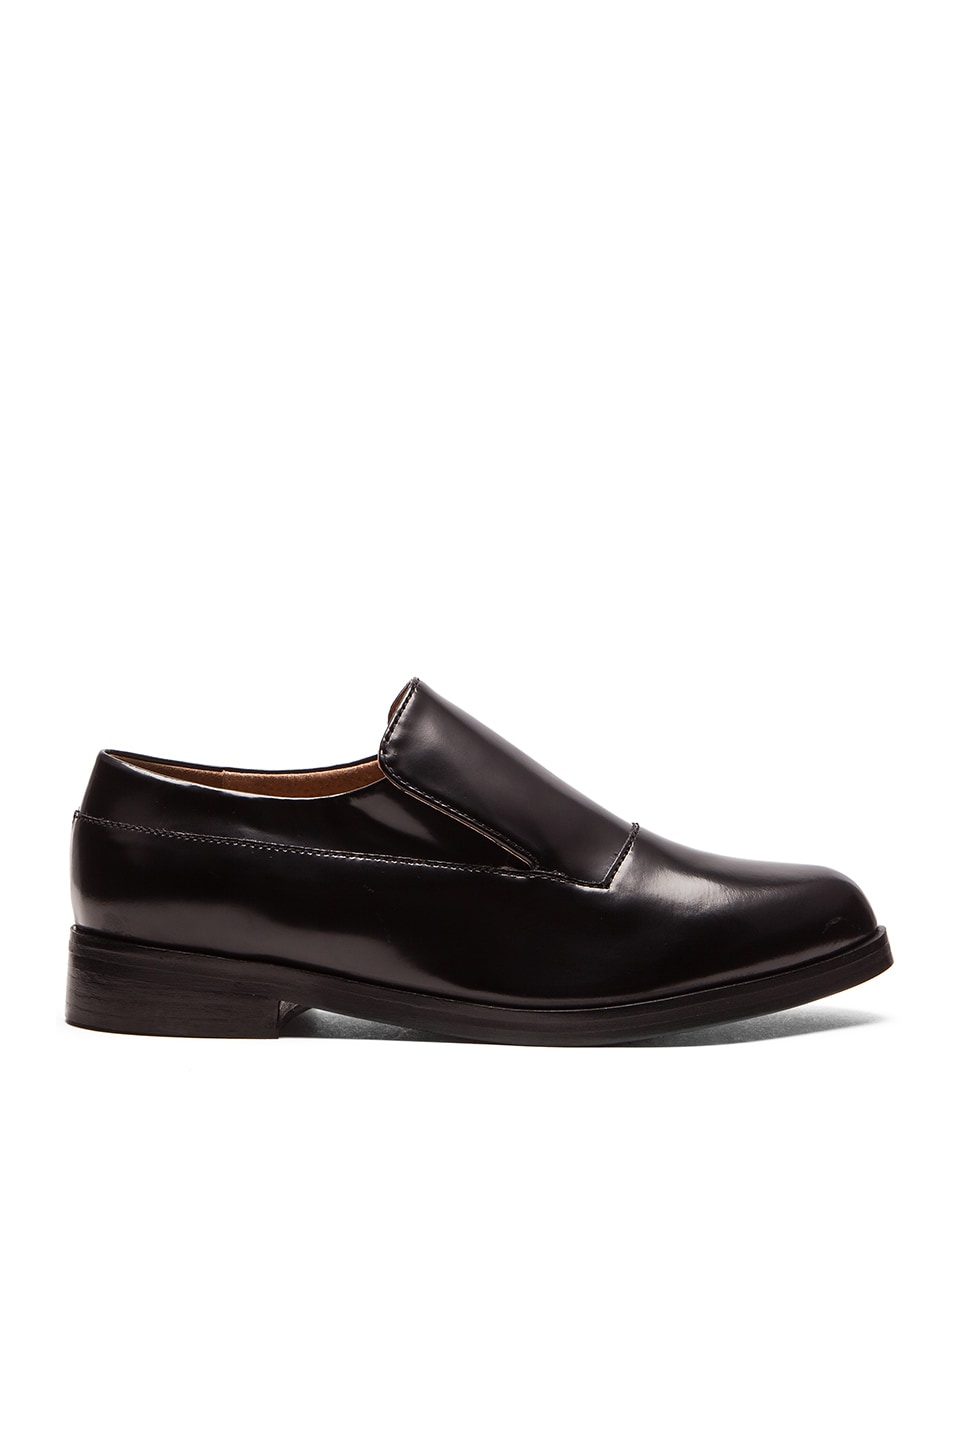 Seychelles Sunstone Loafer in Black